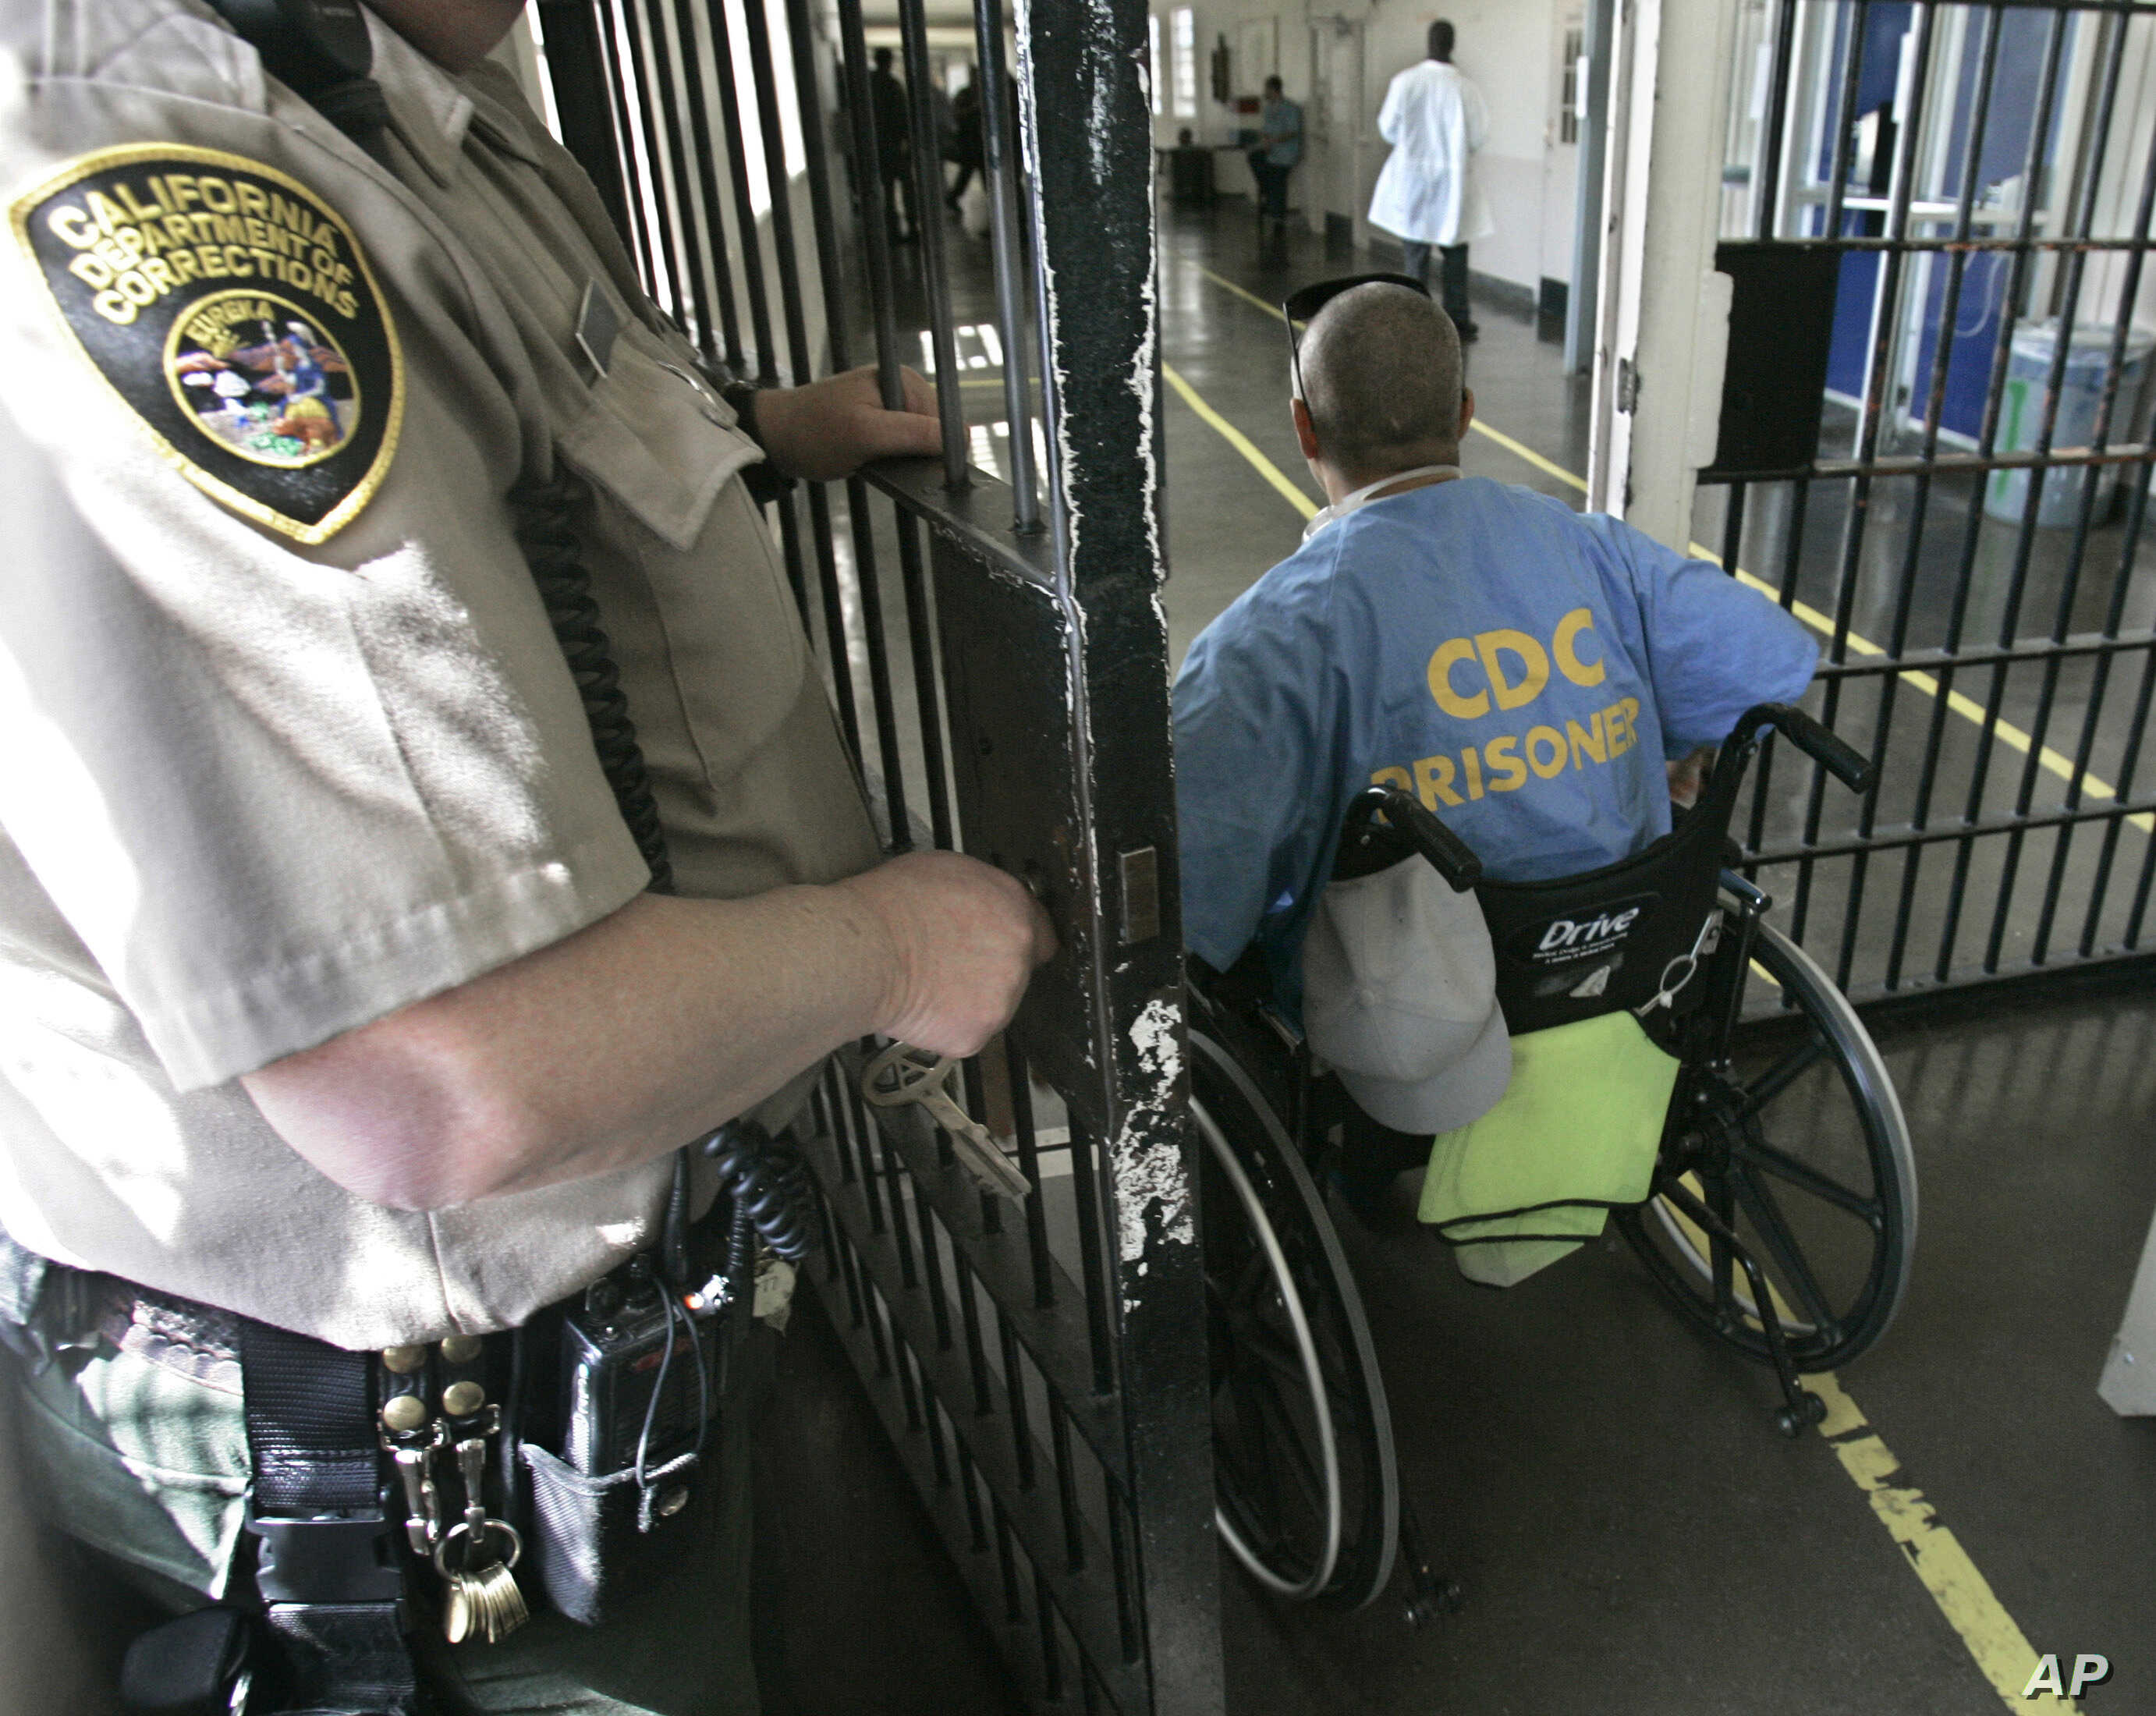 In this April 9, 2008 file photo, a wheelchair bound inmate wheels himself through a check point at the California Medical Facility, in  Vacaville, Calif.